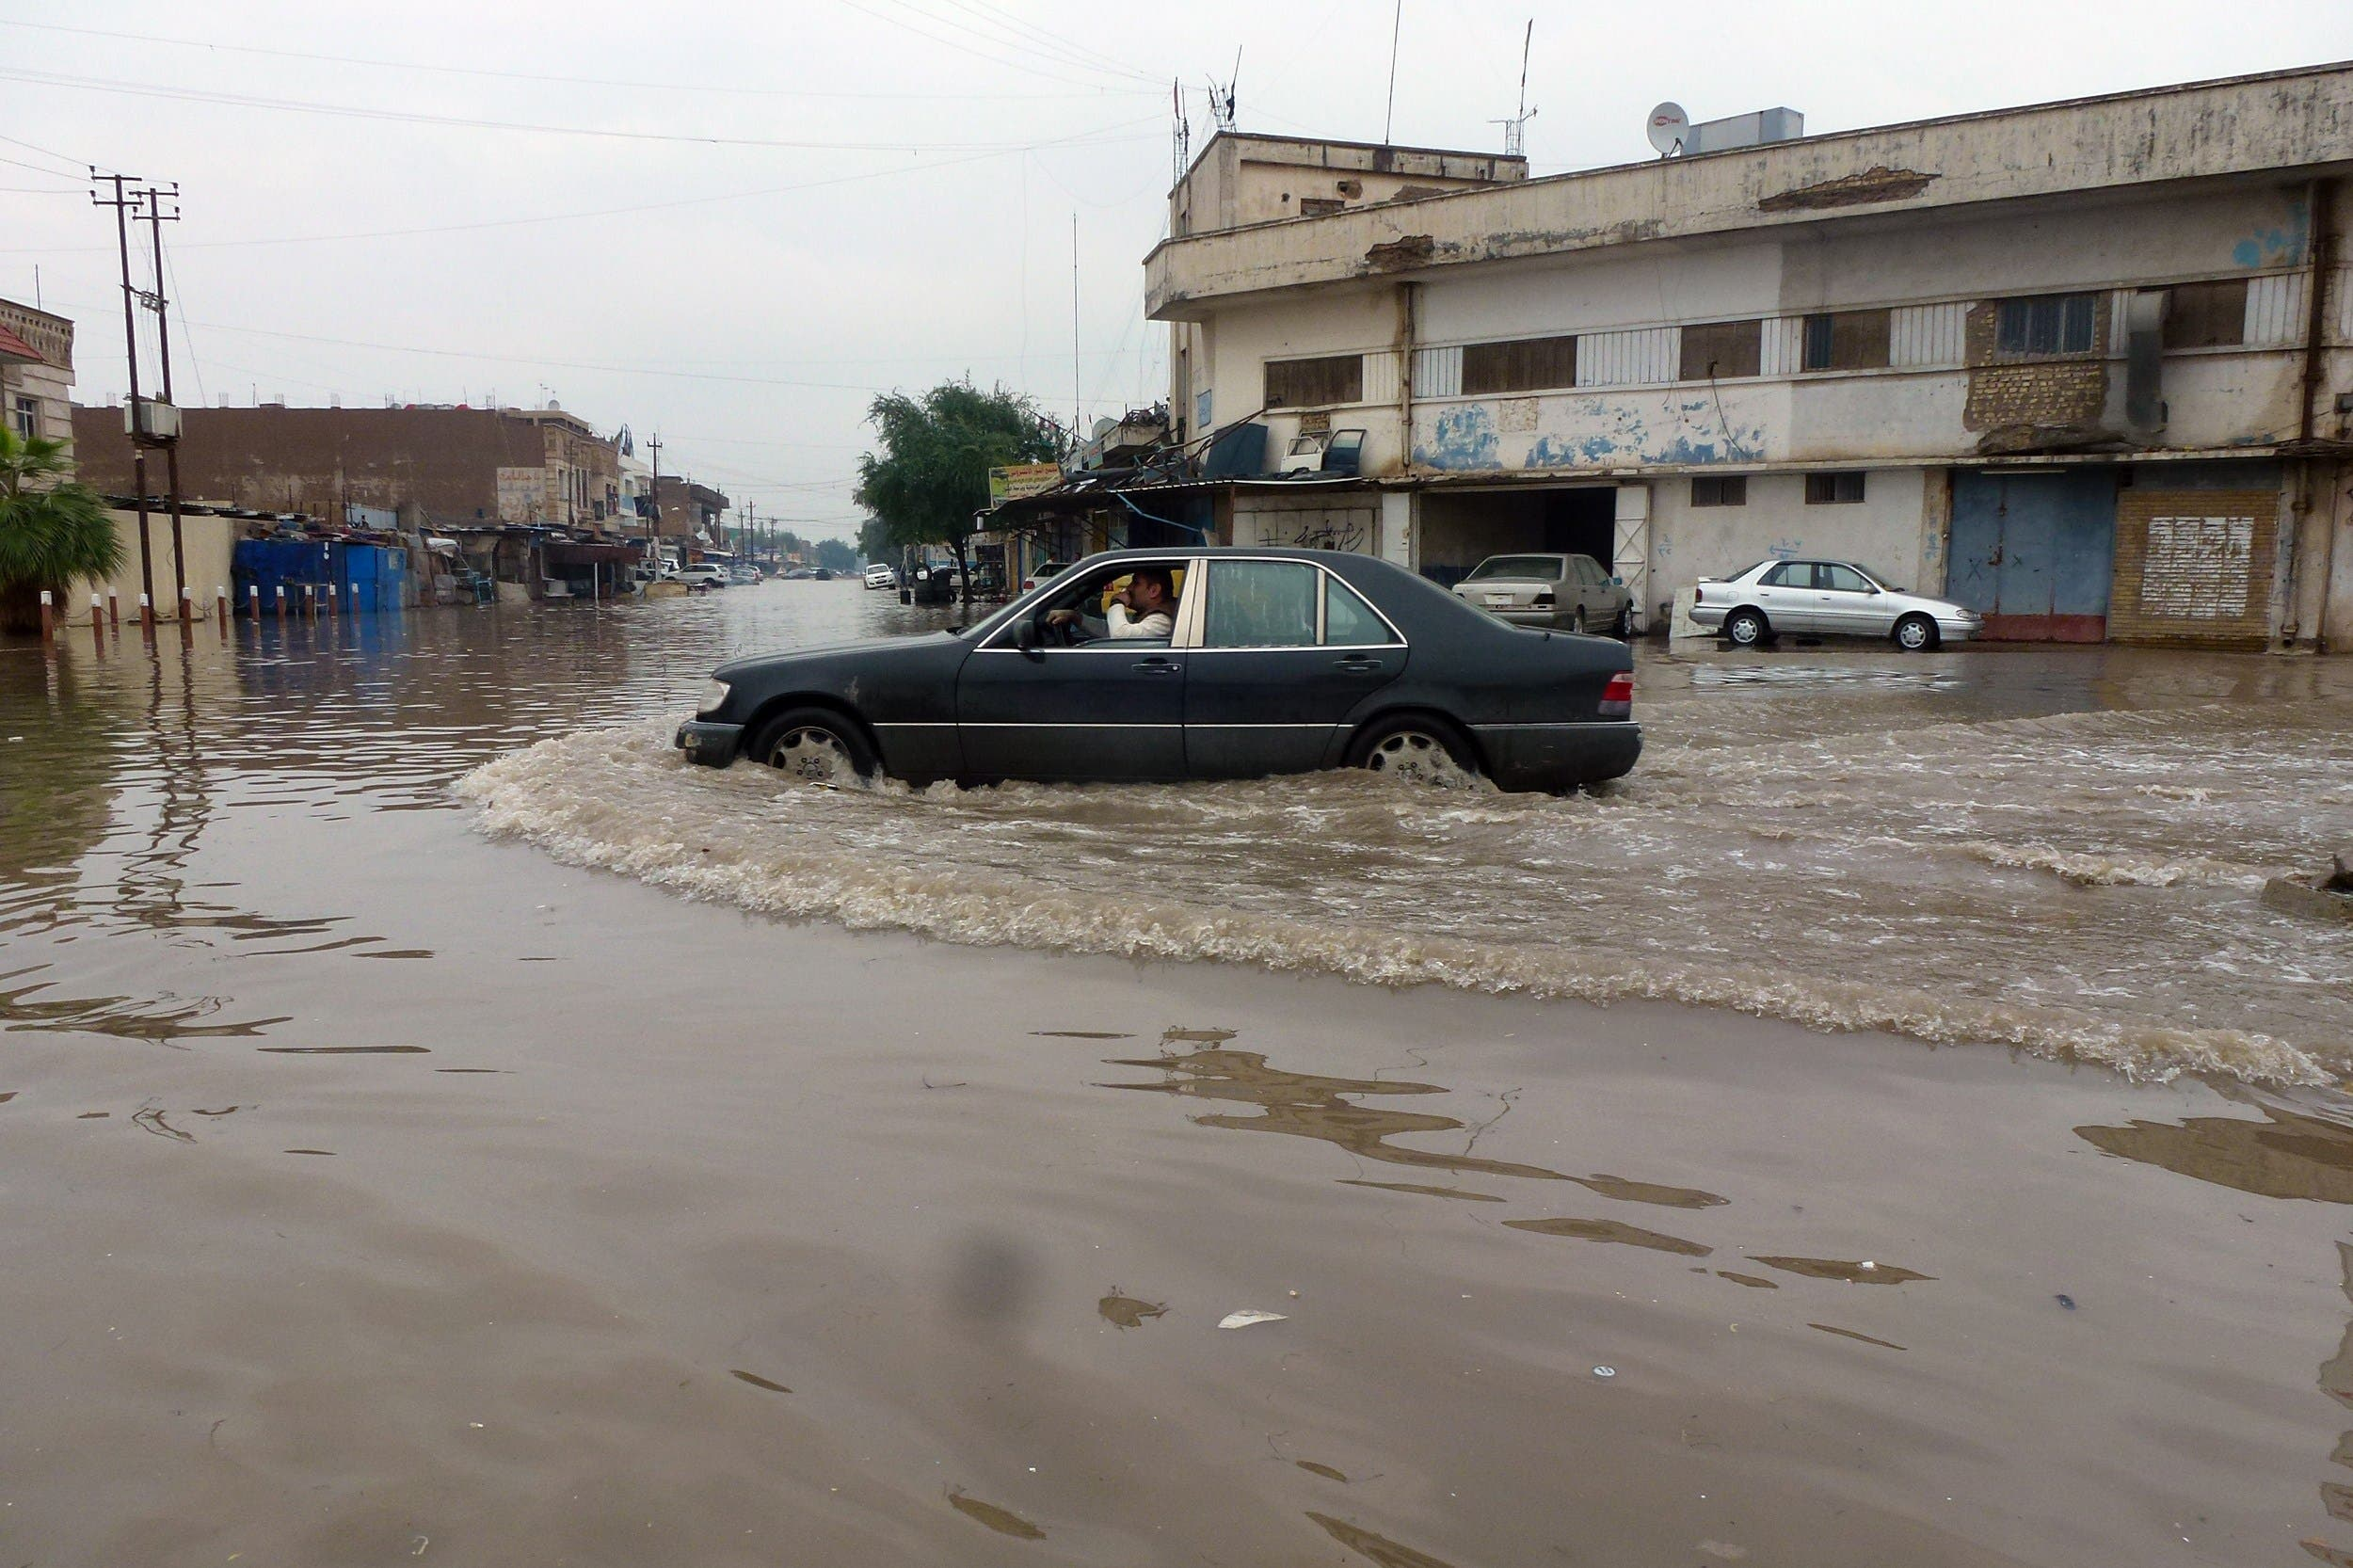 An Iraqi man drives his car through a flooded street in Baghdad on November 20, 2013, as flash floods sparked by torrential rain swept throught region. (AFP)